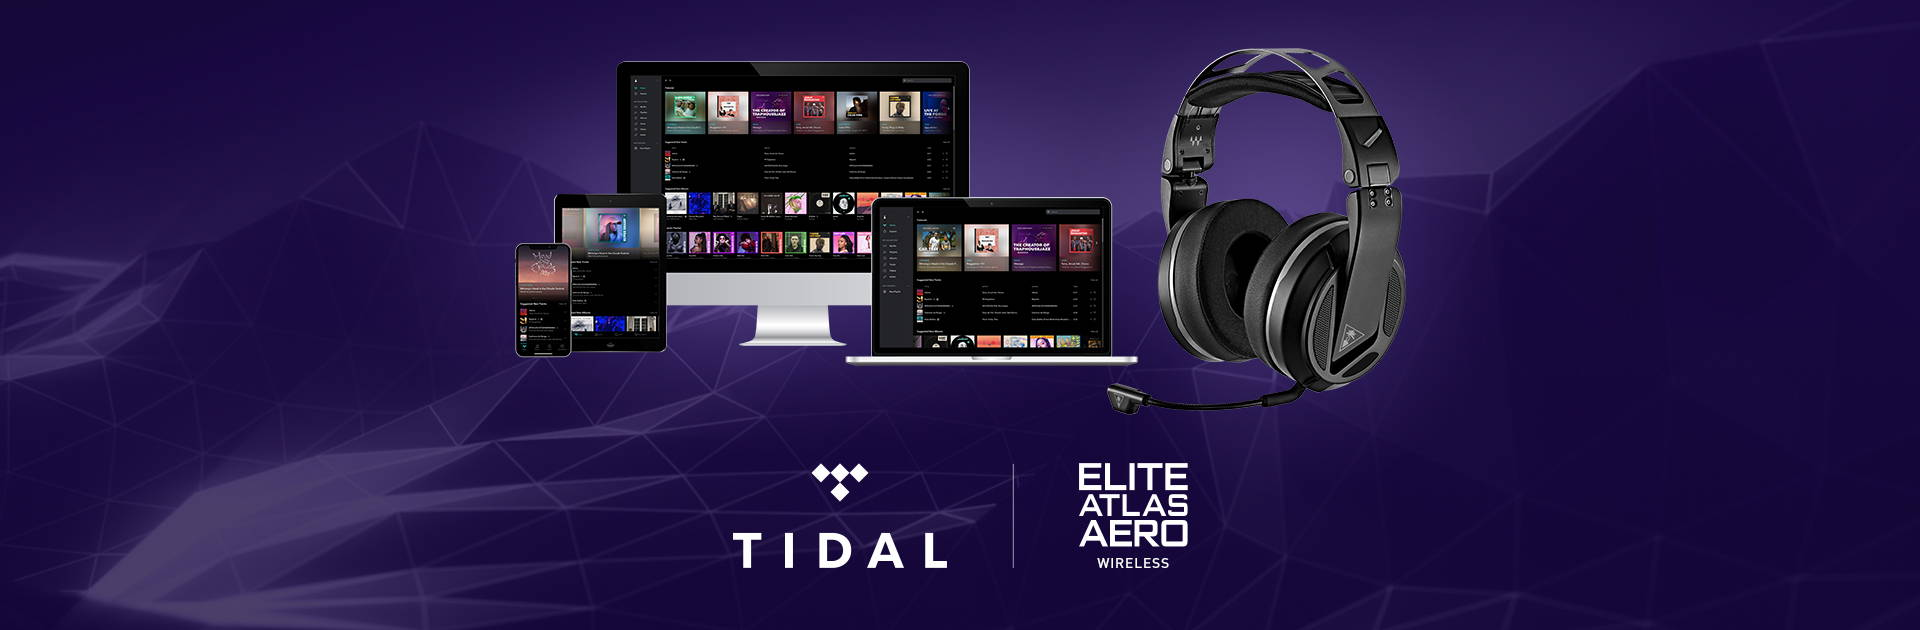 TIDAL OFFER ATLAS AERO